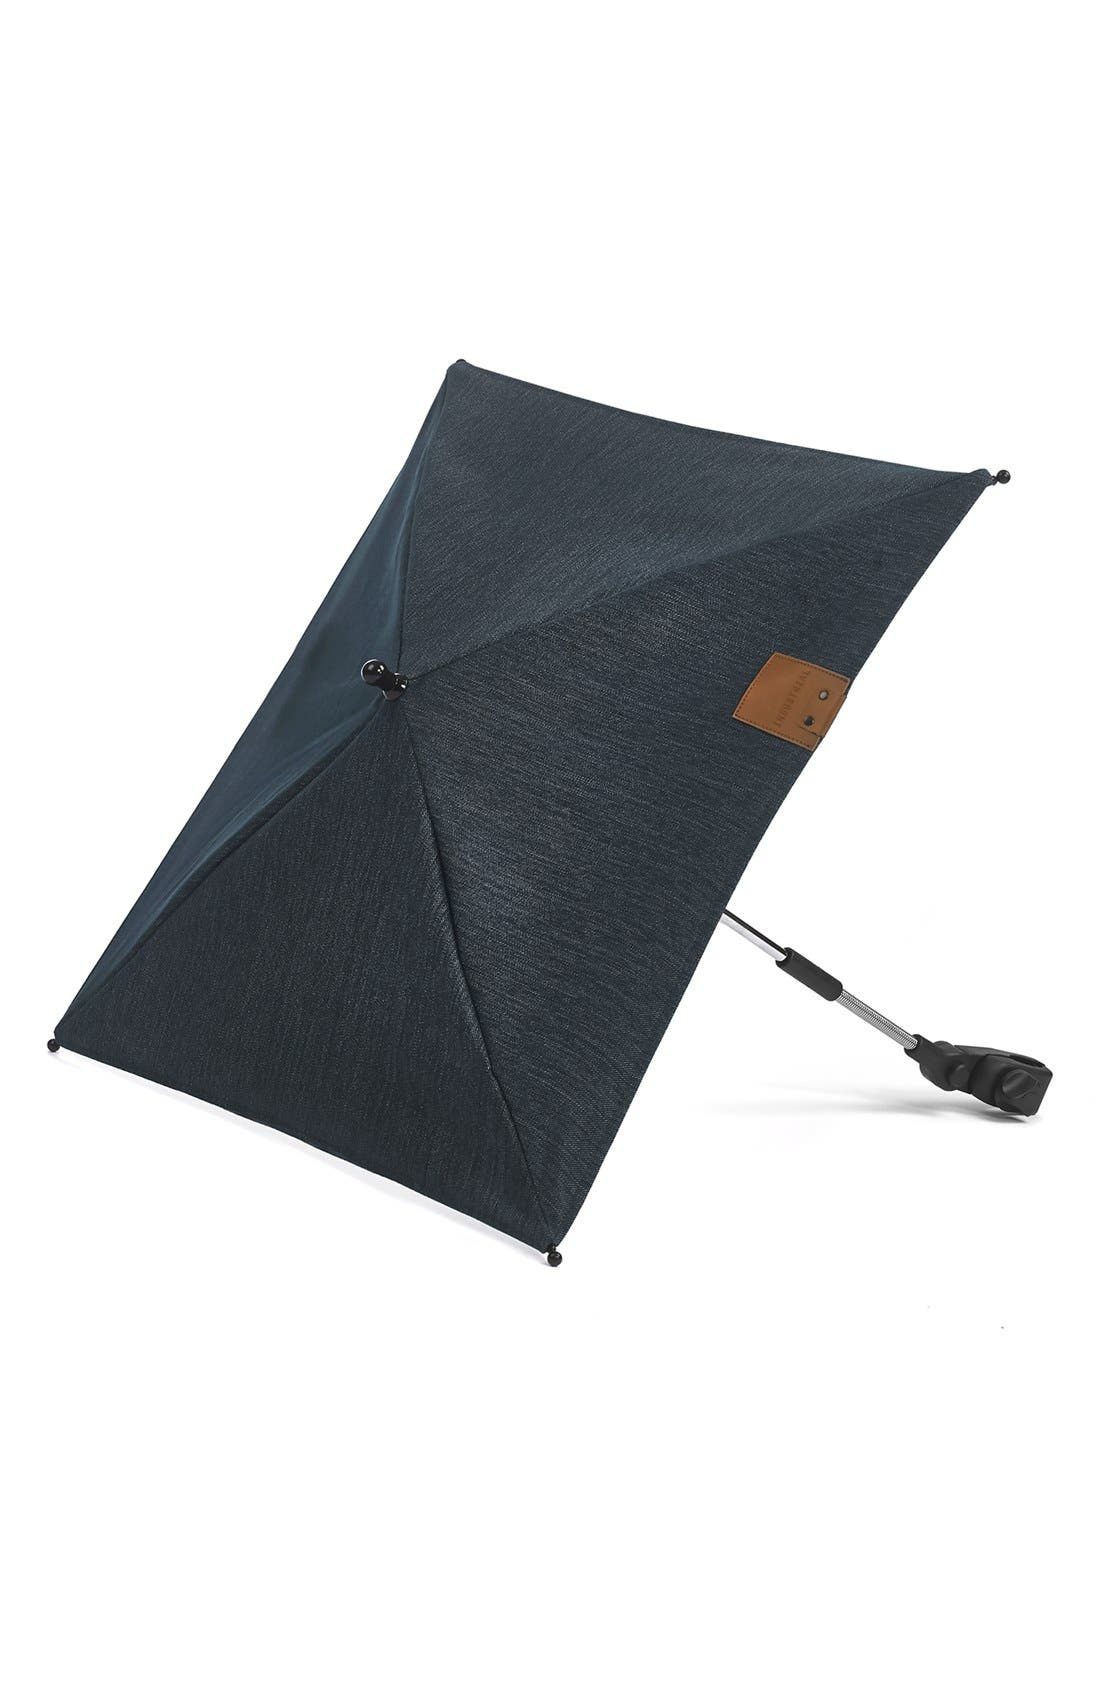 'Evo - Industrial Blue' Stroller Umbrella,                             Main thumbnail 1, color,                             400